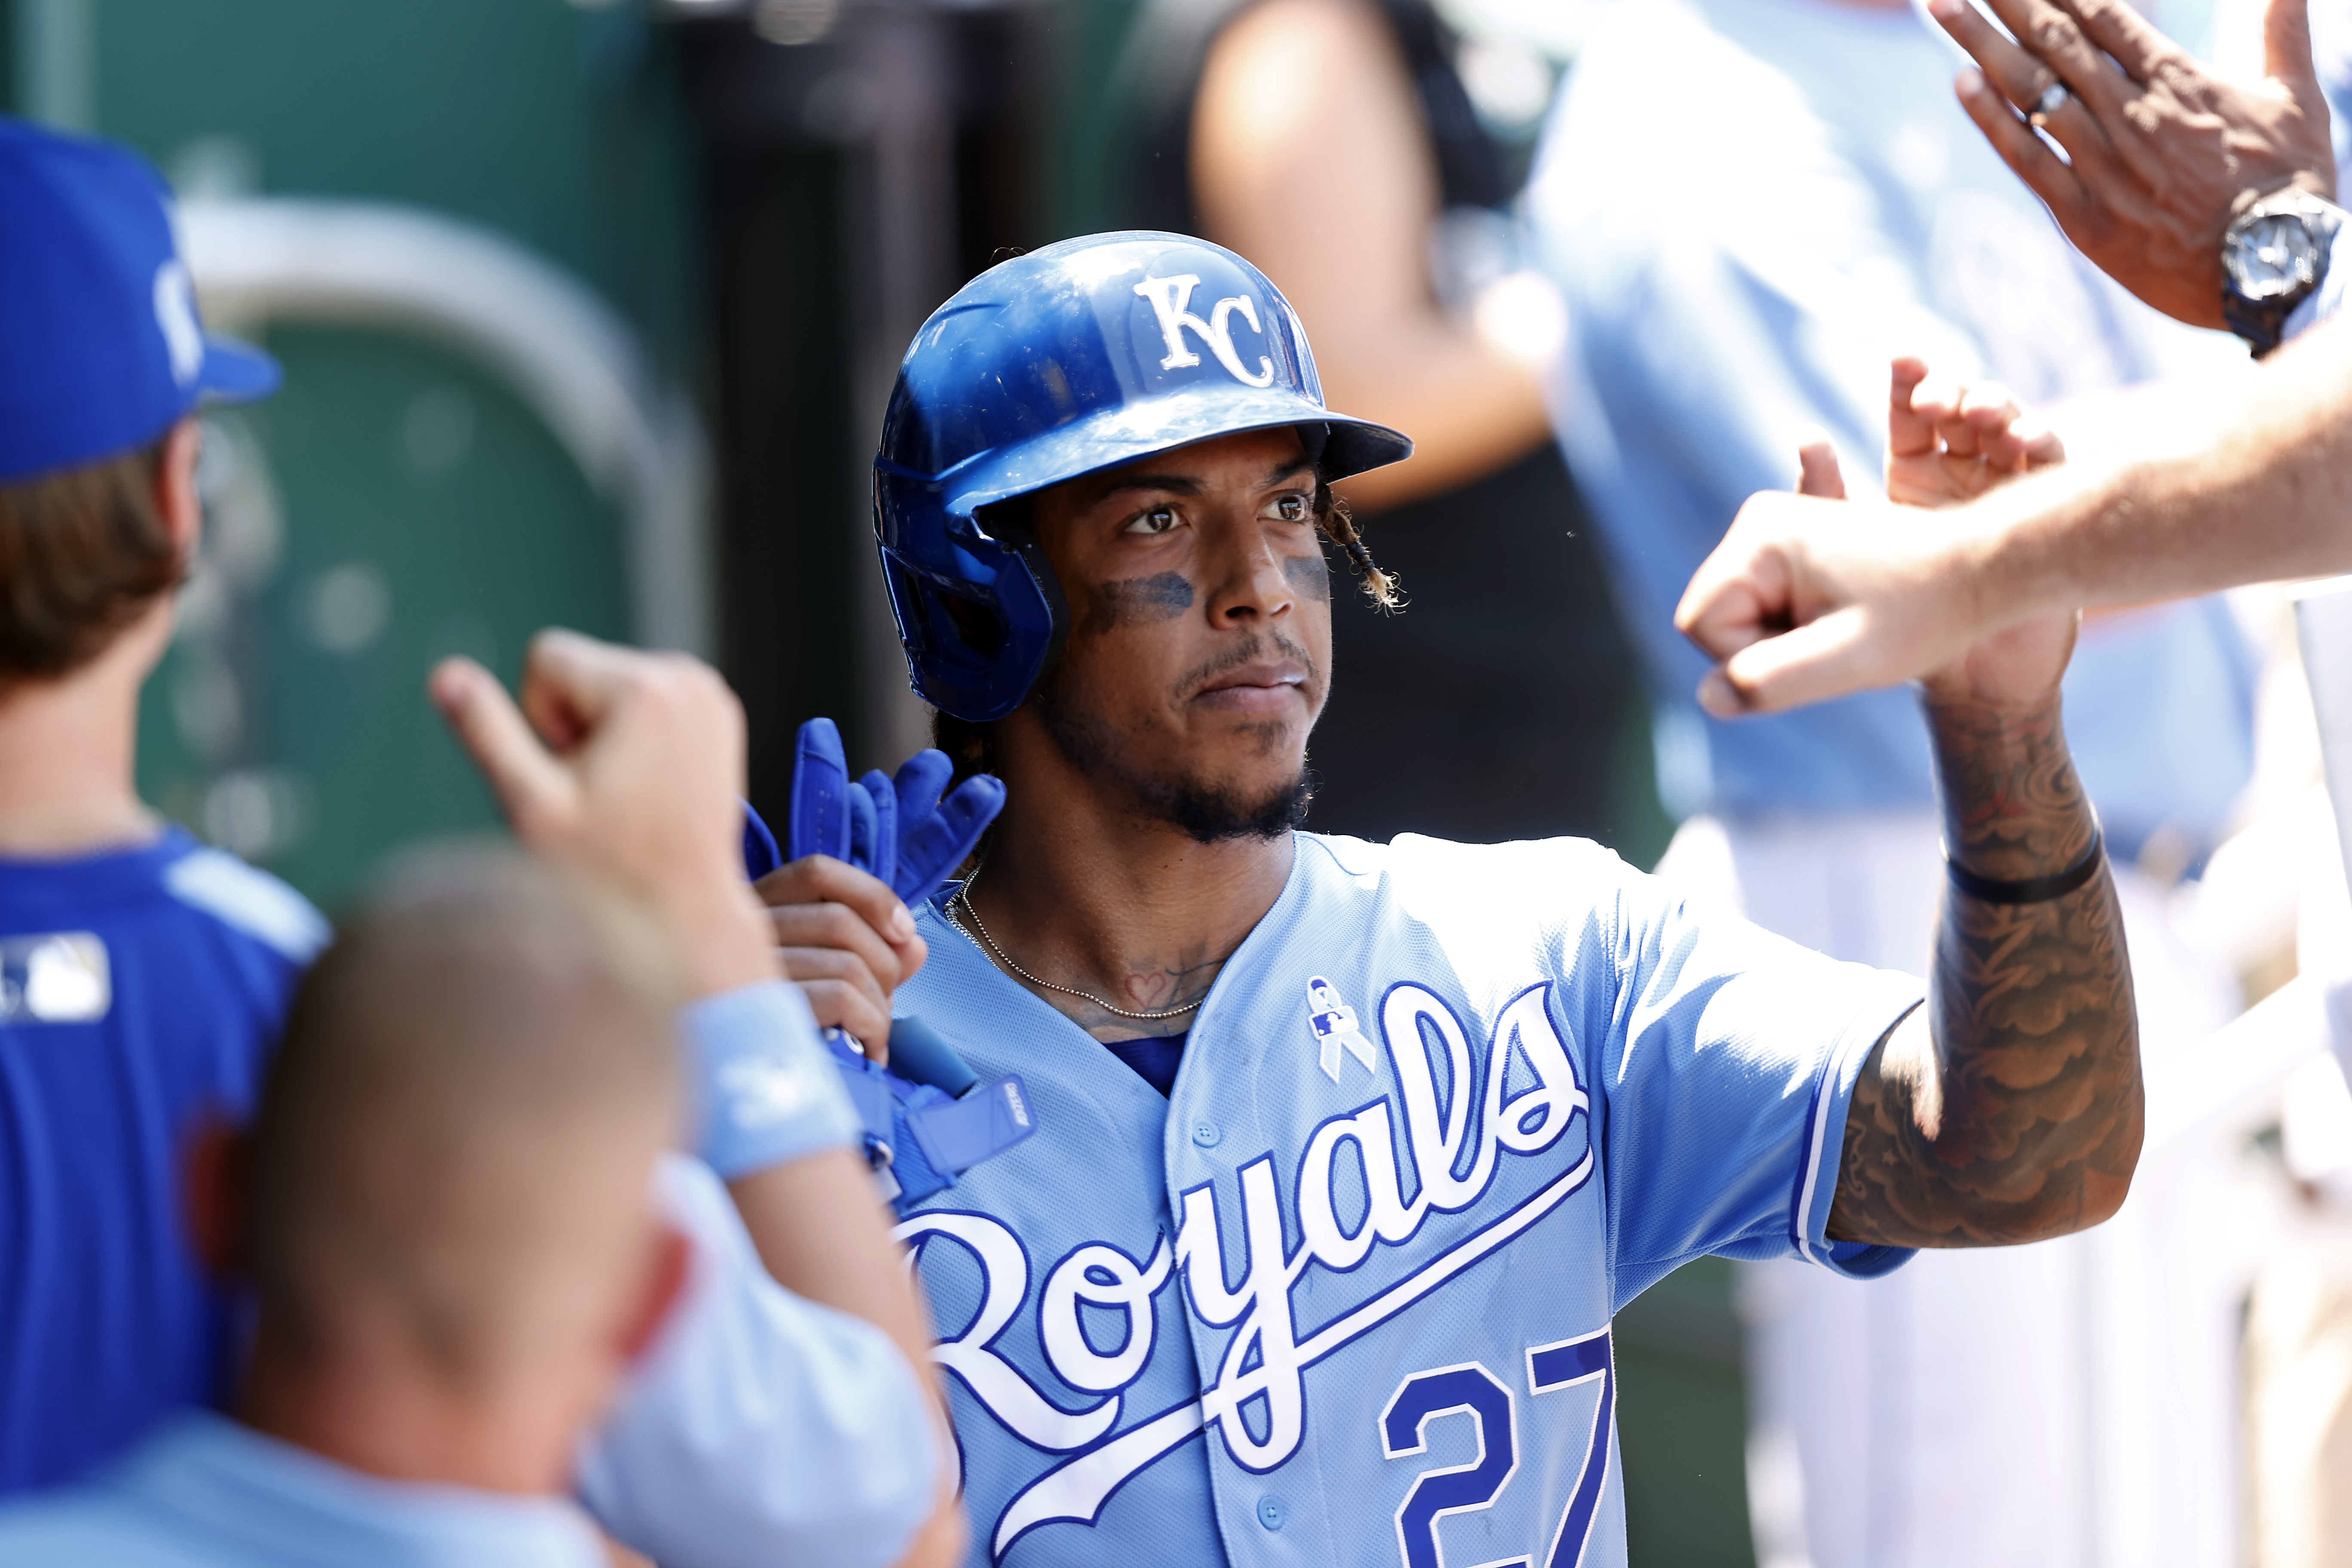 Adalberto Mondesi #27 of the Kansas City Royals is congratulated by teammates in the dugout after scoring during the 3rd inning of the game against the Boston Red Sox at Kauffman Stadium on June 20, 2021 in Kansas City, Missouri.